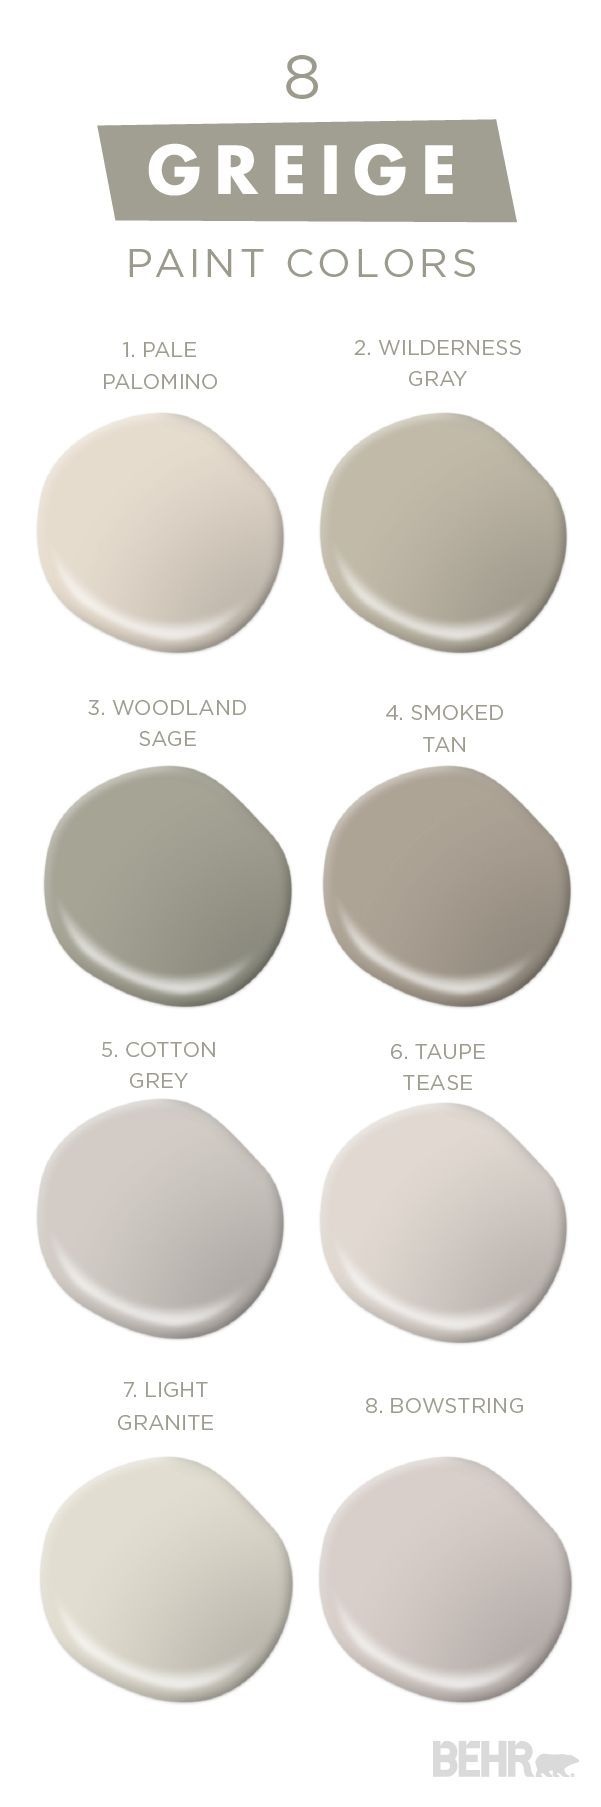 "You can never have too much of a good thing with this collection of classic neutral paint colors from BEHR. Embrace ""Greige,"" a mixture of gray and beige, in your home and see what a fresh coat of paint can do for you. The experts at BEHR can help you choose from thousands of high-quality paint colors to create a palette that perfectly reflects your unique sense of style."